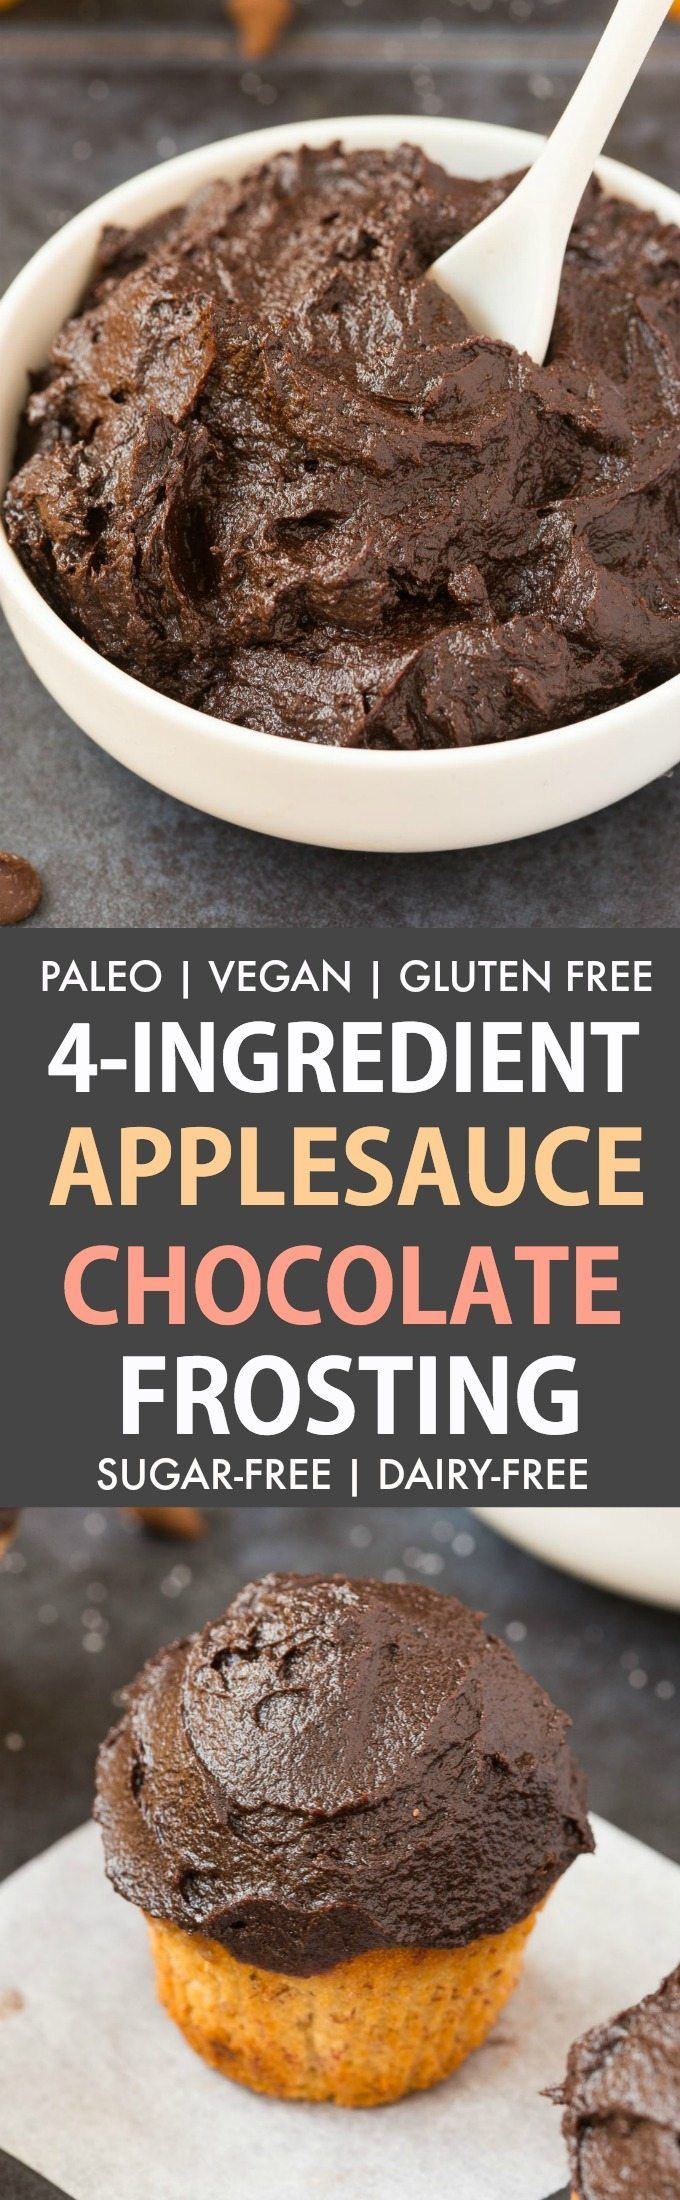 Healthy 4 Ingredient Applesauce Chocolate Frosting (Paleo, Vegan, Gluten Free)- A versatile EASY and fool proof Chocolate Frosting recipe made sugar-free!